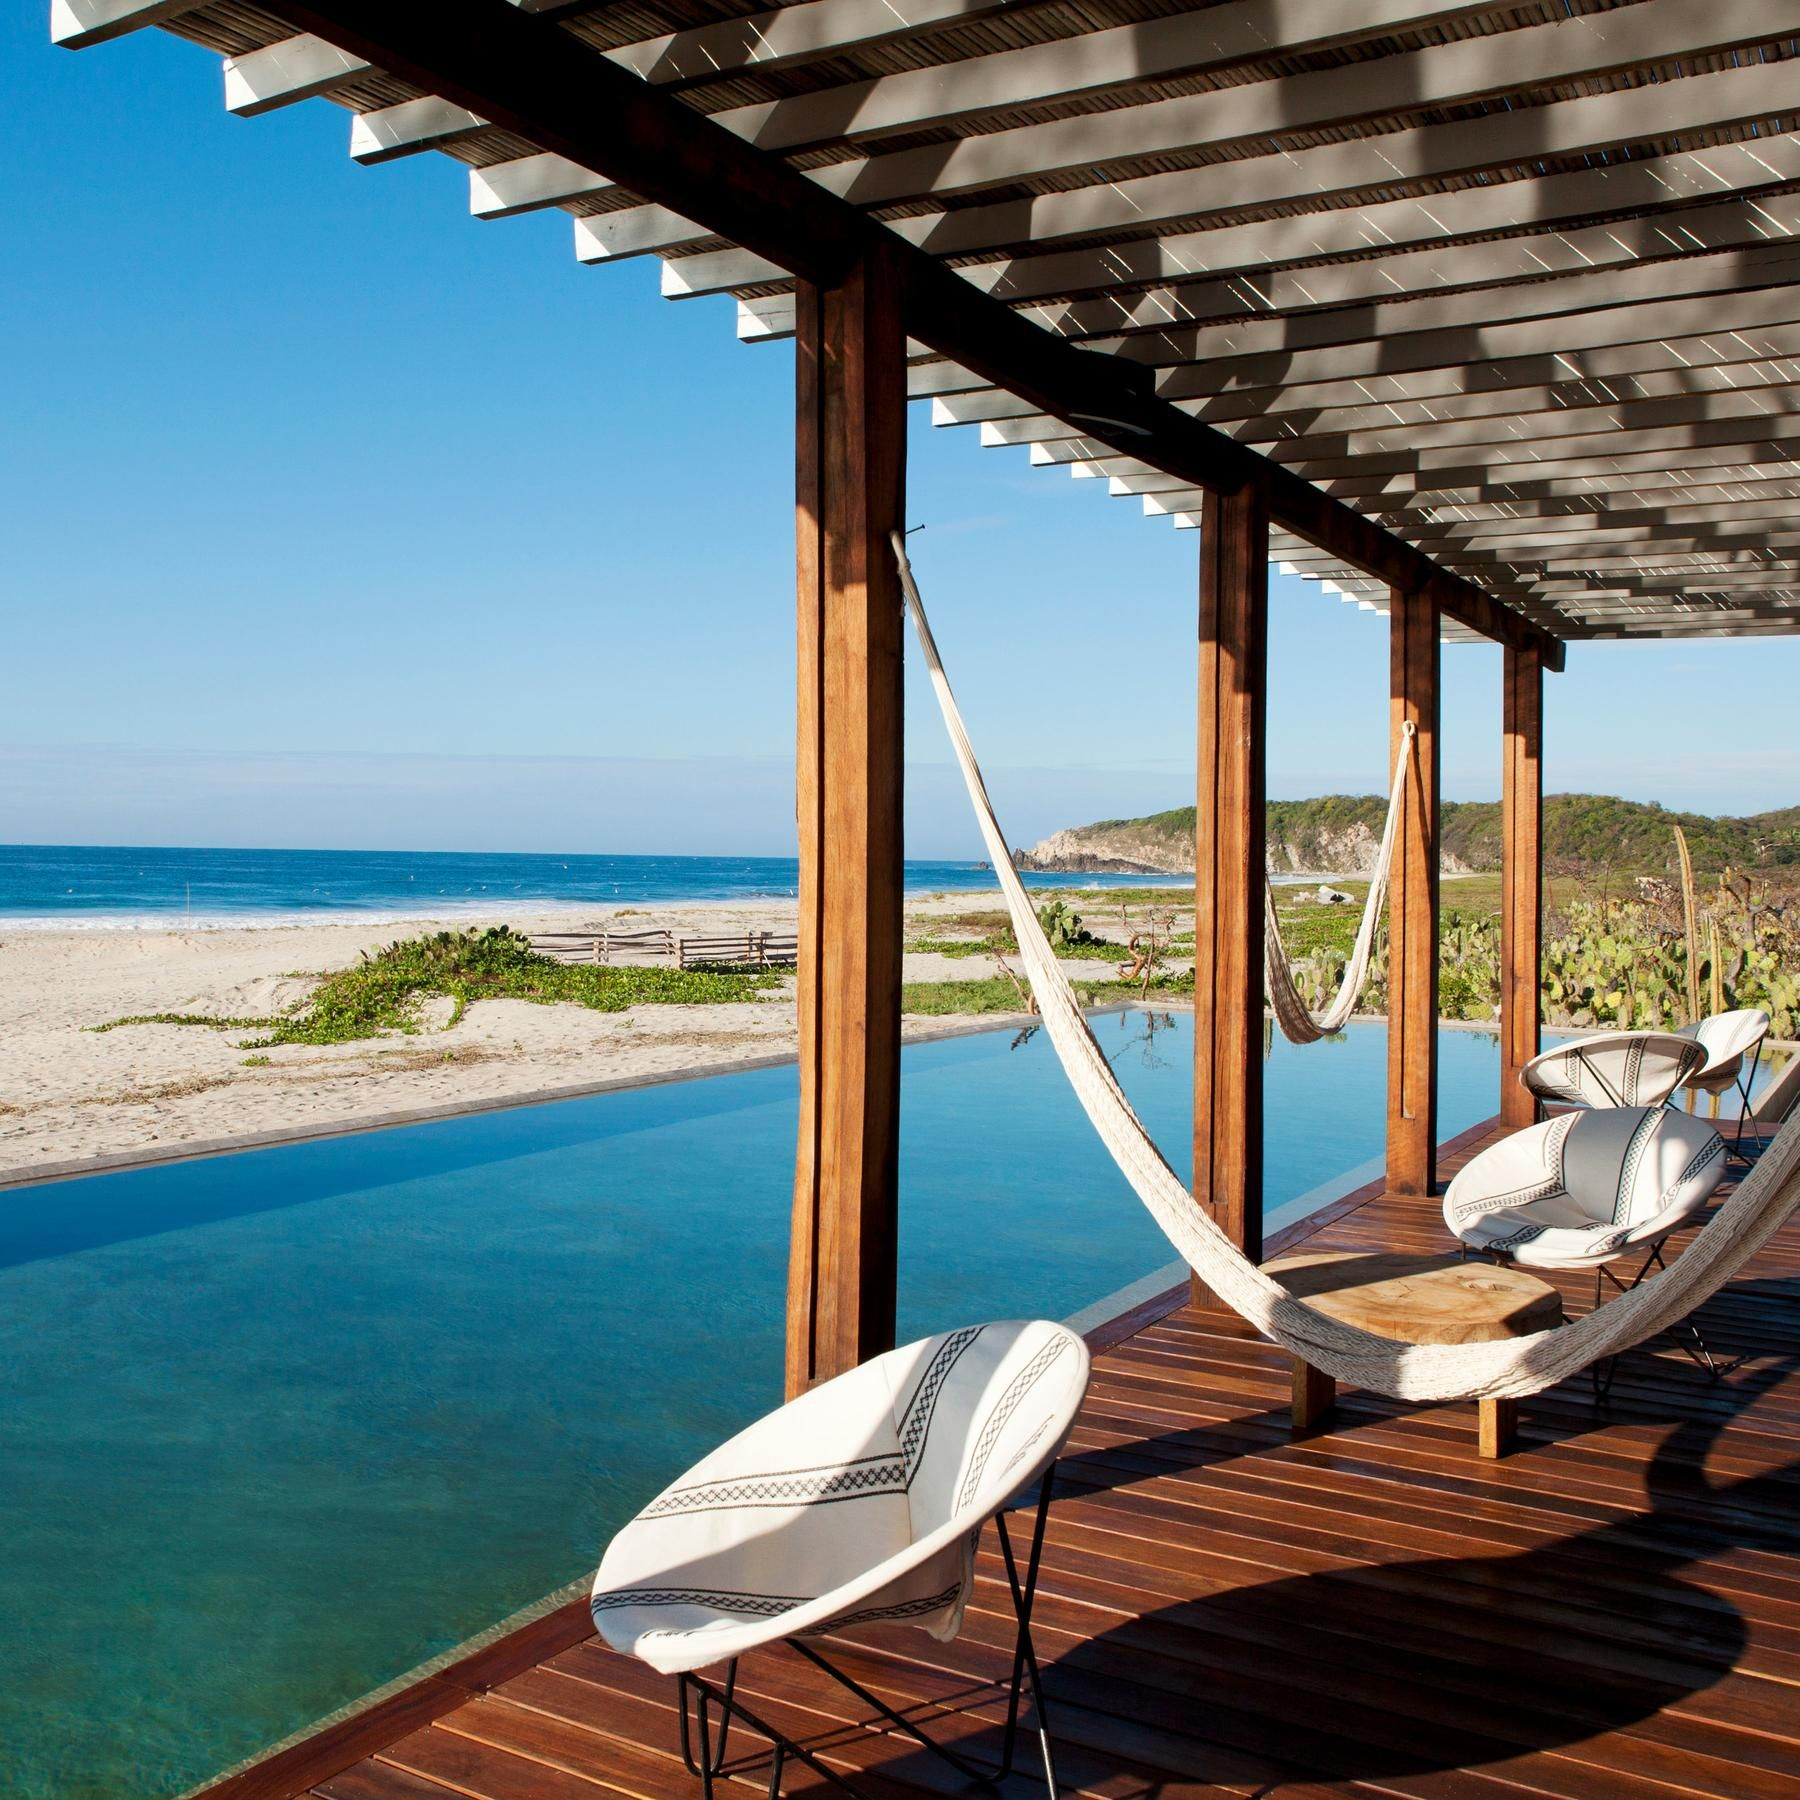 10 reasons to visit oaxaca mexico beach resort for Design hotel oaxaca